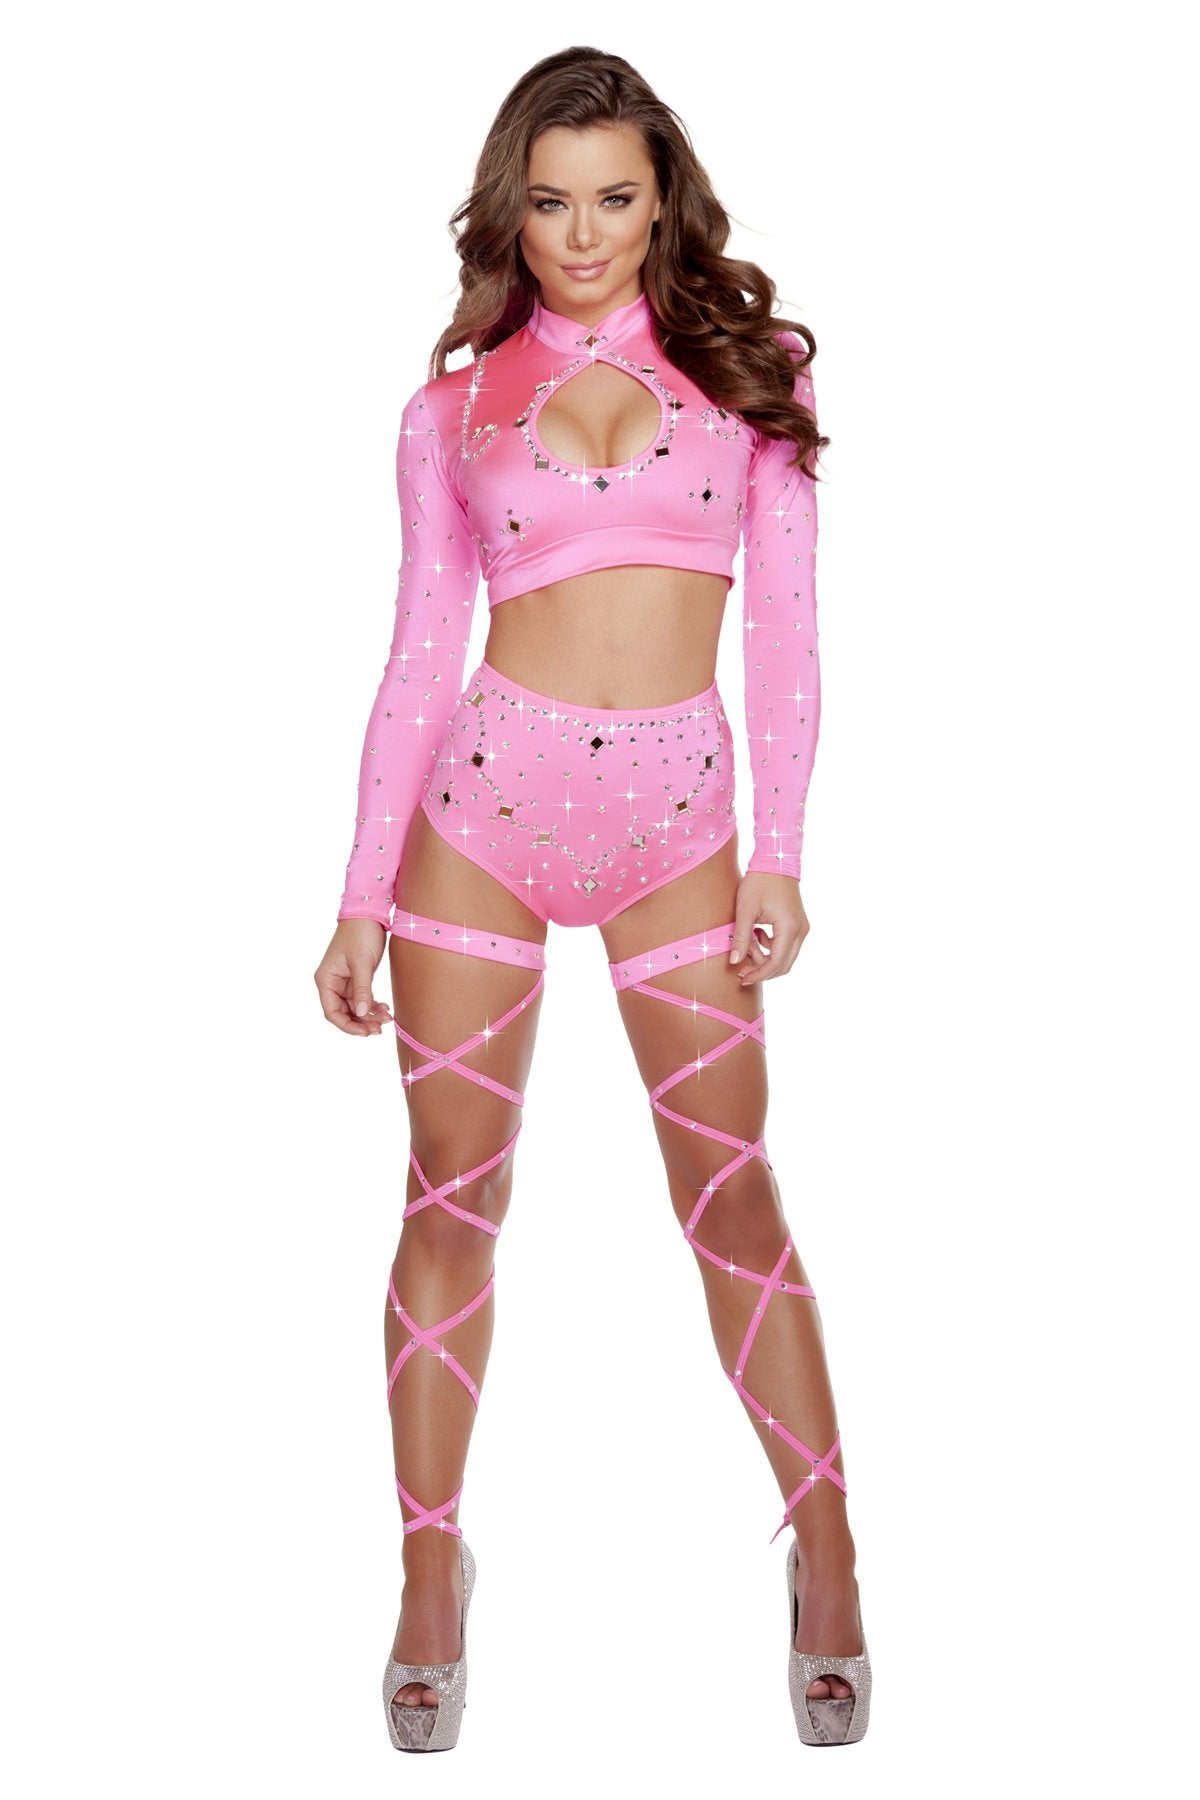 3204 - Hot Pink Long Sleeved Crop Top & High Waisted Shorts with Rhinestones